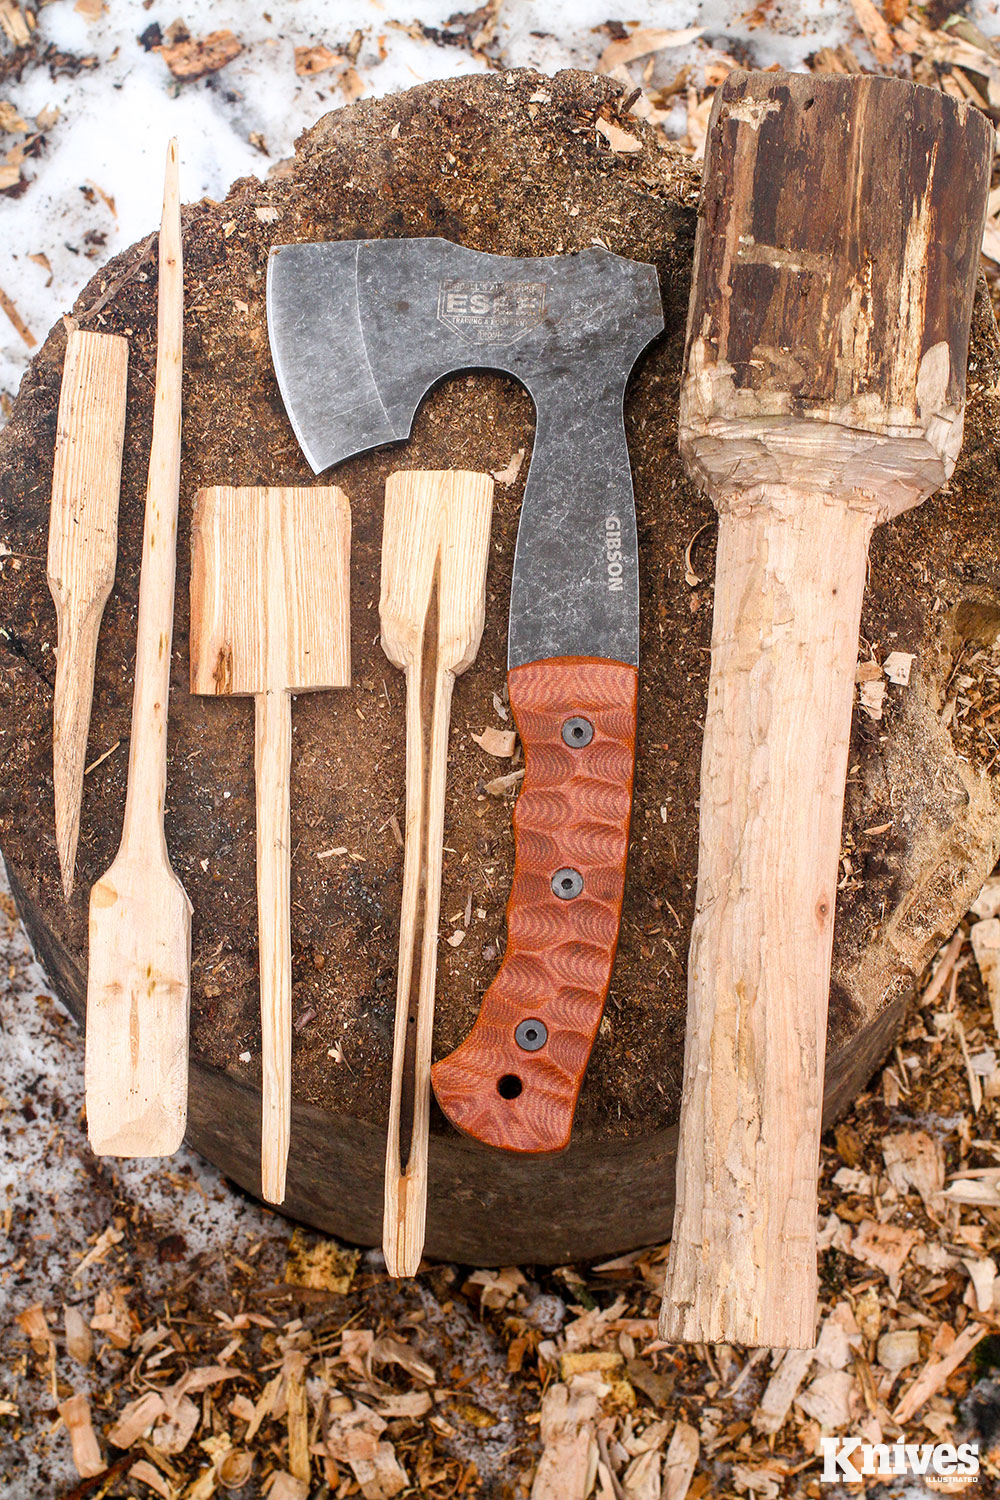 The completed tools the author made with the Gibson Carving Axe overnight on his winter camp trip. Many are still in use today.